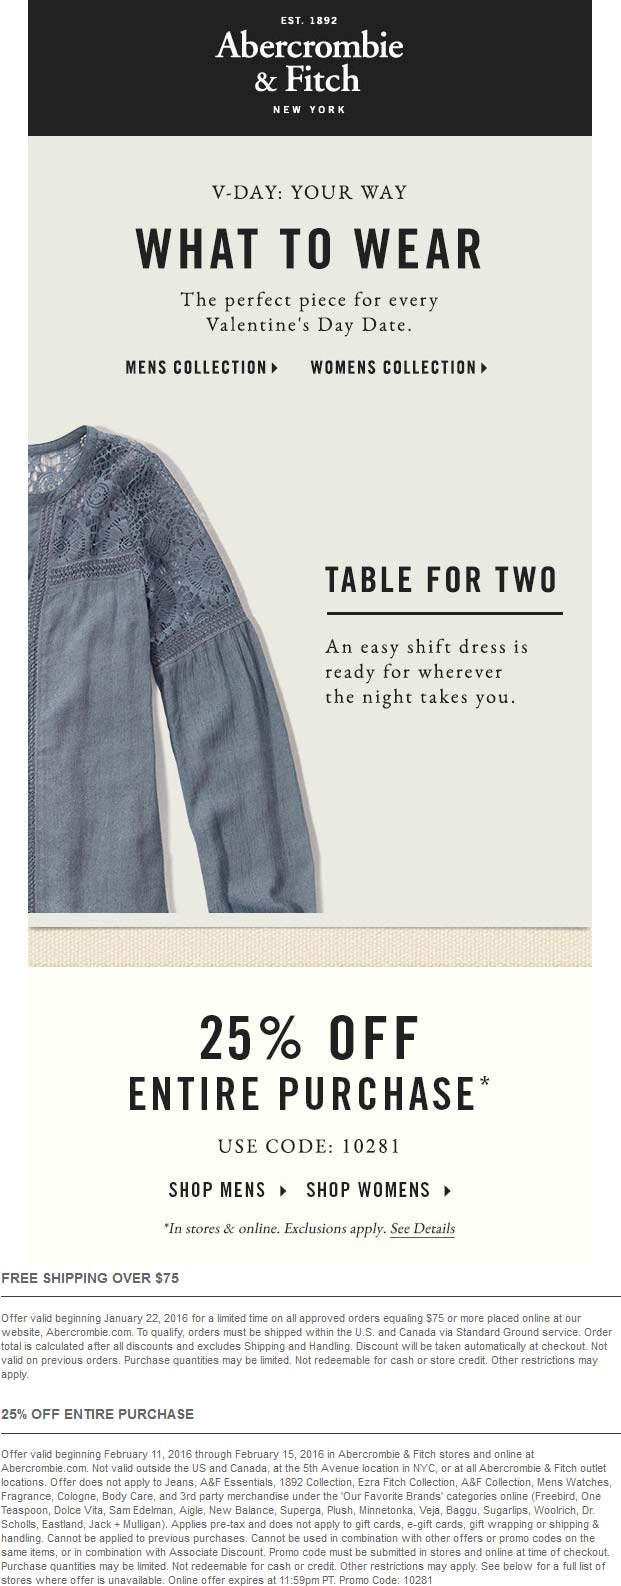 Abercrombie & Fitch Coupon December 2016 25% off at Abercrombie & Fitch, or online via promo code 10281